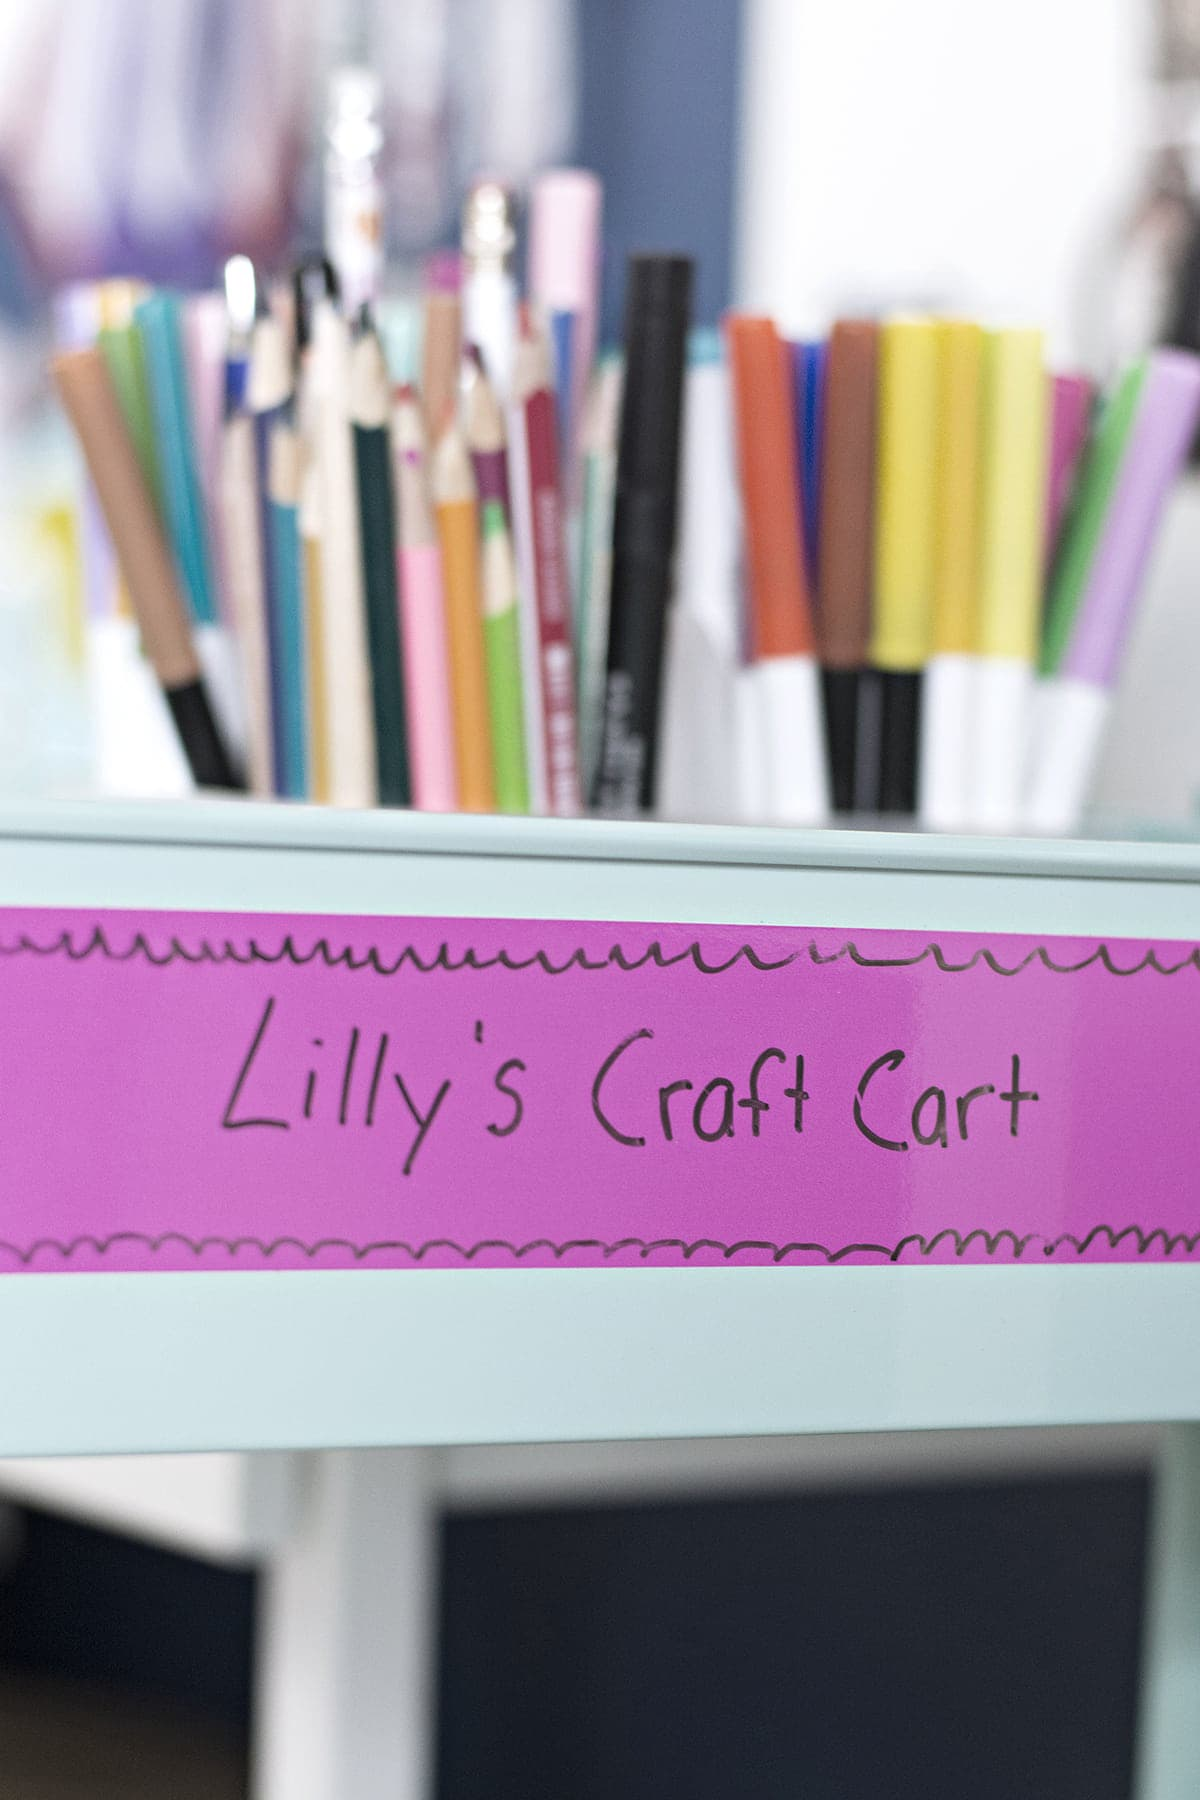 kids crafting cart